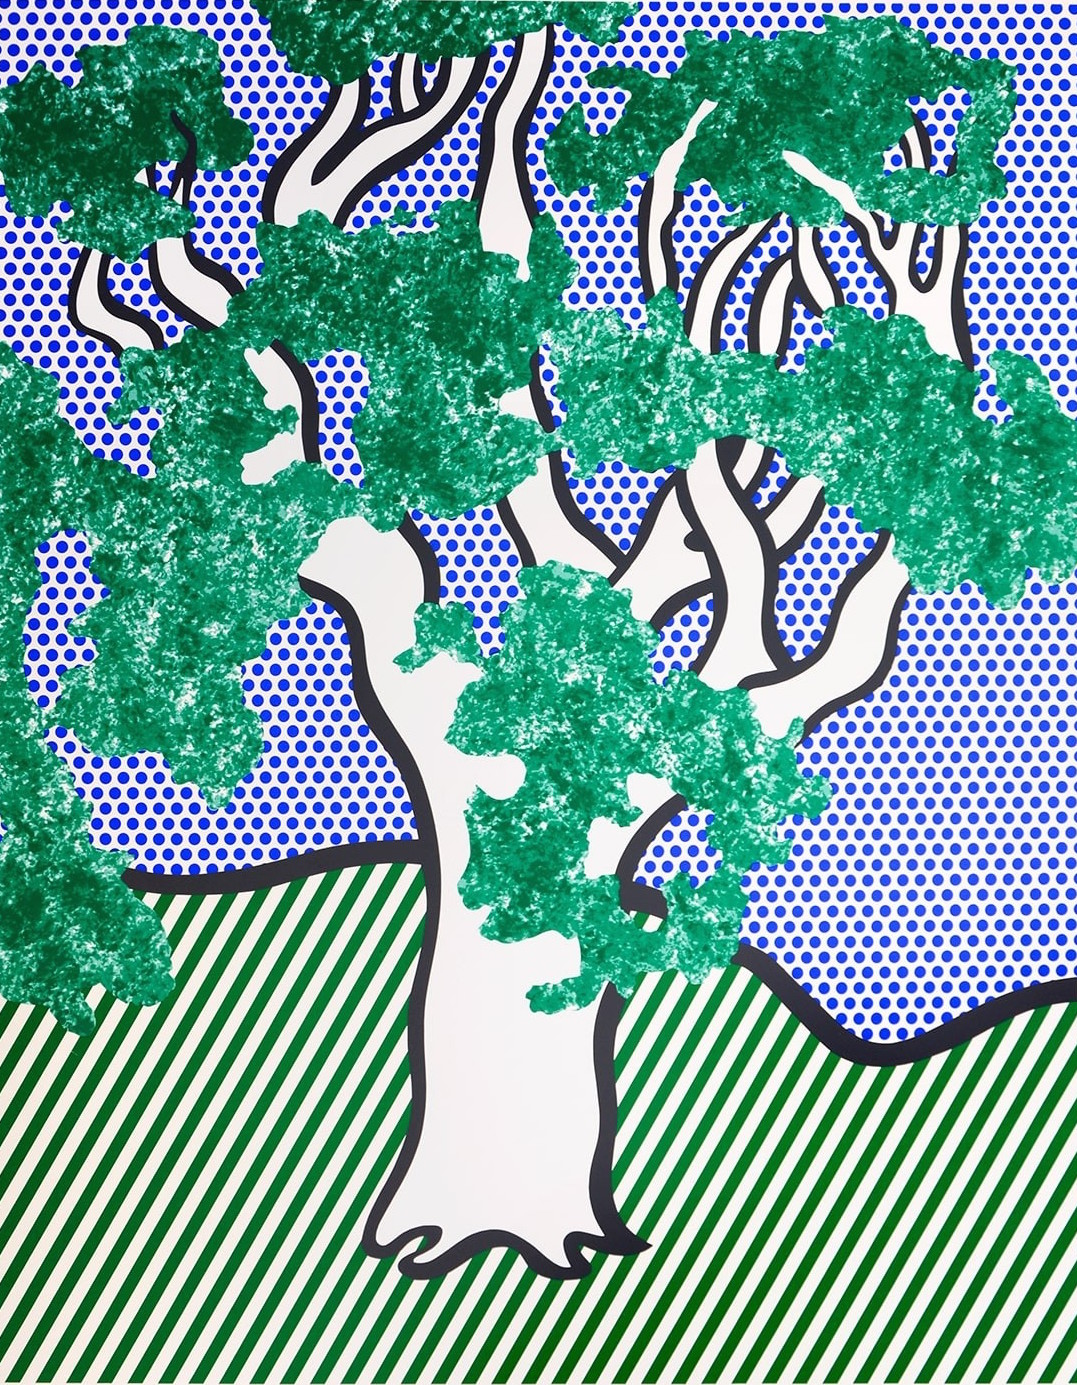 rain forest by roy lichtenstein